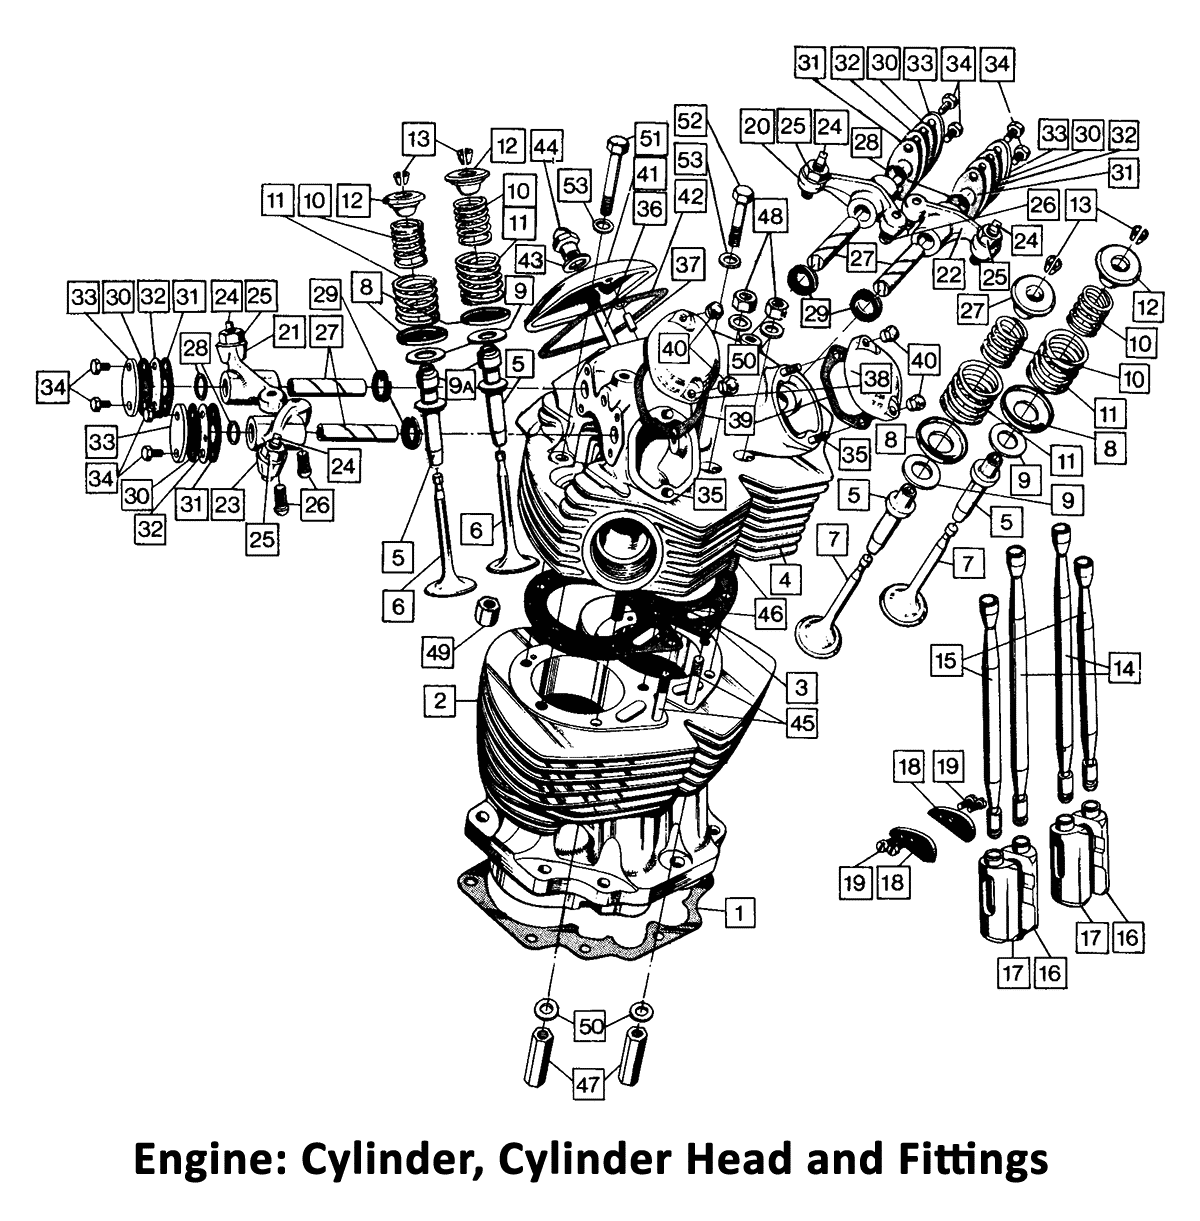 1971 Norton Commando Cylinder, Cylinder Head & Fittings -